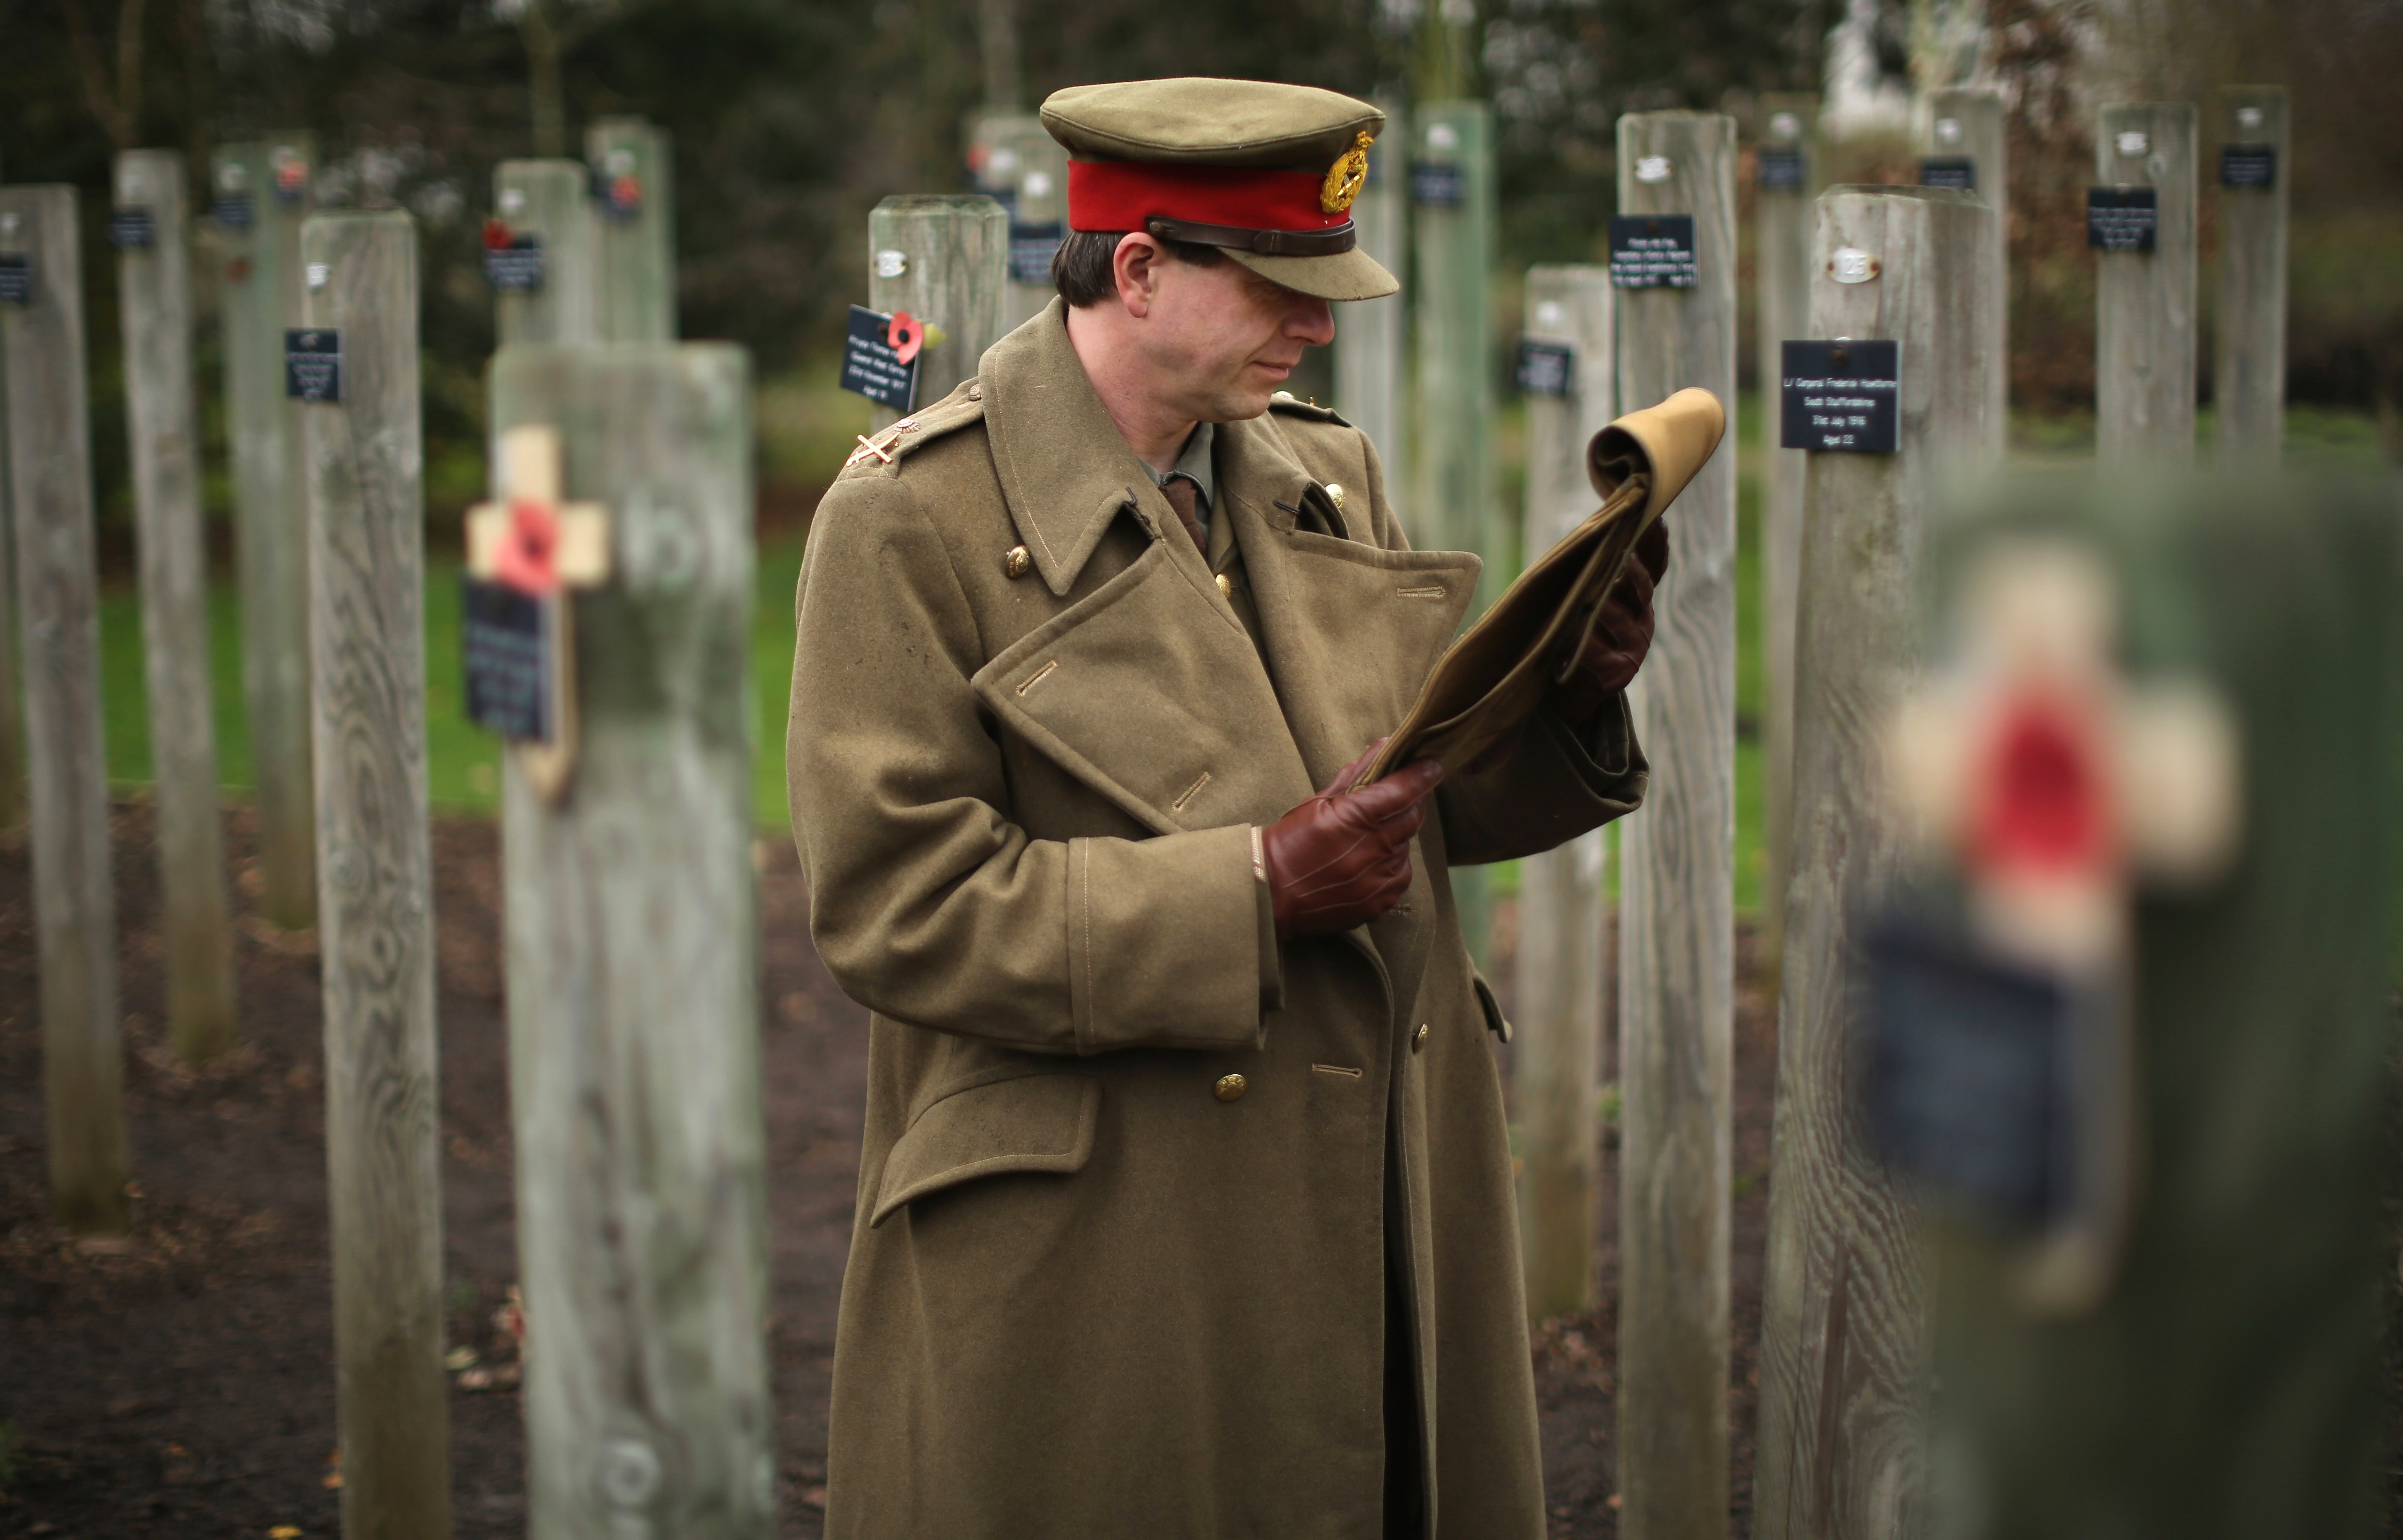 Living historian Paul Thompson poses as Gen. Walter Congreve V.C. at the National Memorial Arboretum in Staffordshire, England, this month as he reads the general's letter from the trenches describing the Christmas Day Truce of 1914. The previously unpublished letter, donated by the general's family to the Staffordshire Council archives, tells how British and German soldiers agreed to the famous truce in no man's land, where they sang songs and played soccer before returning to their trenches.